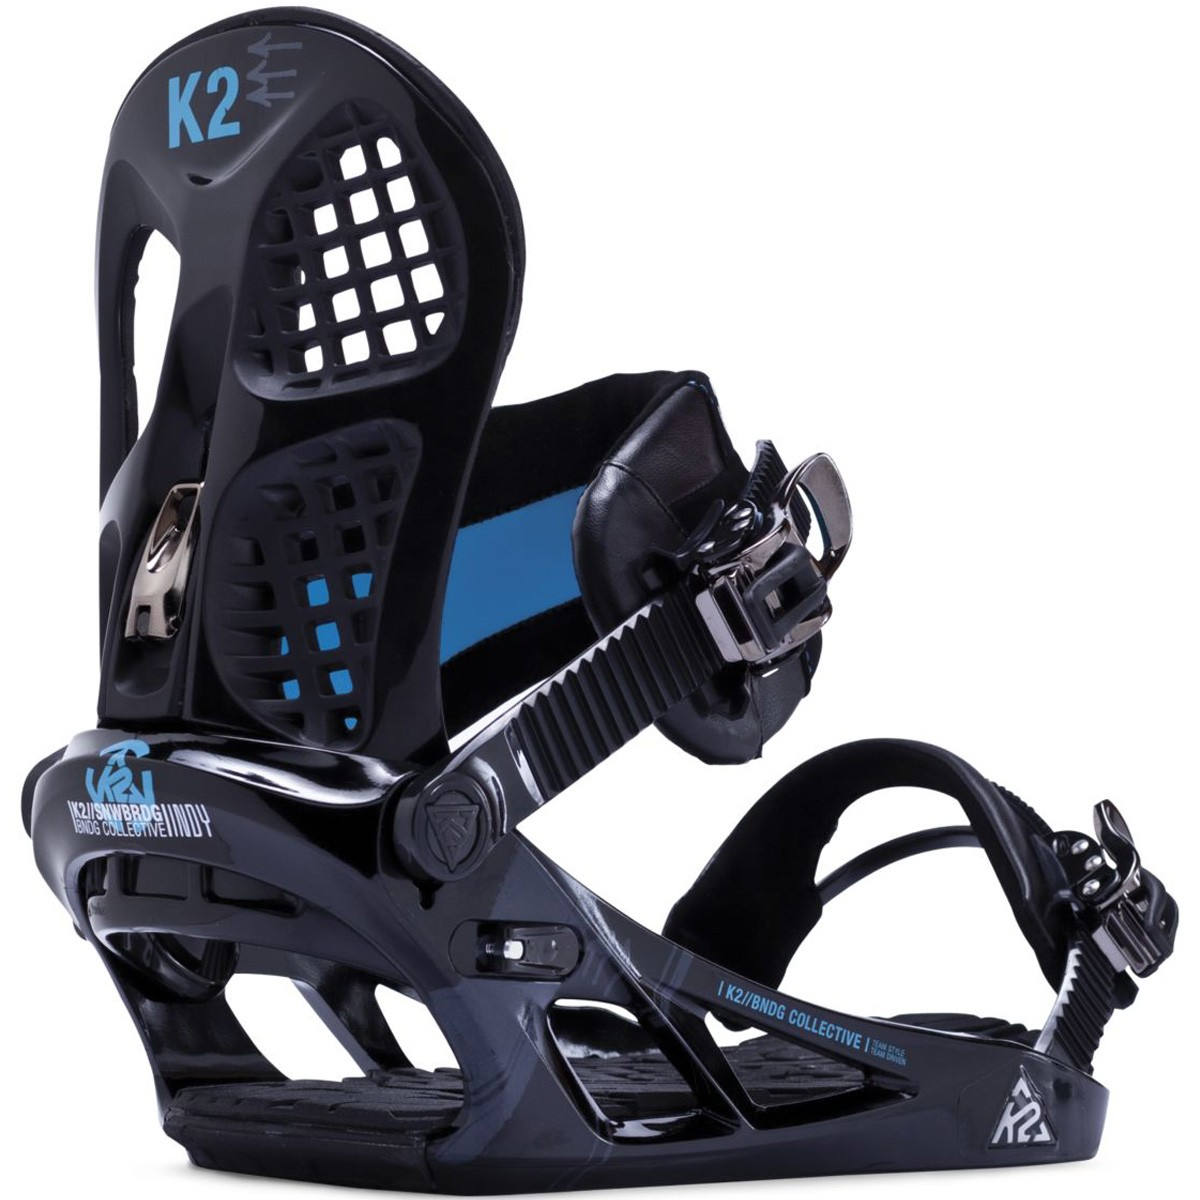 K2 Indy Snowboard Bindings - Black